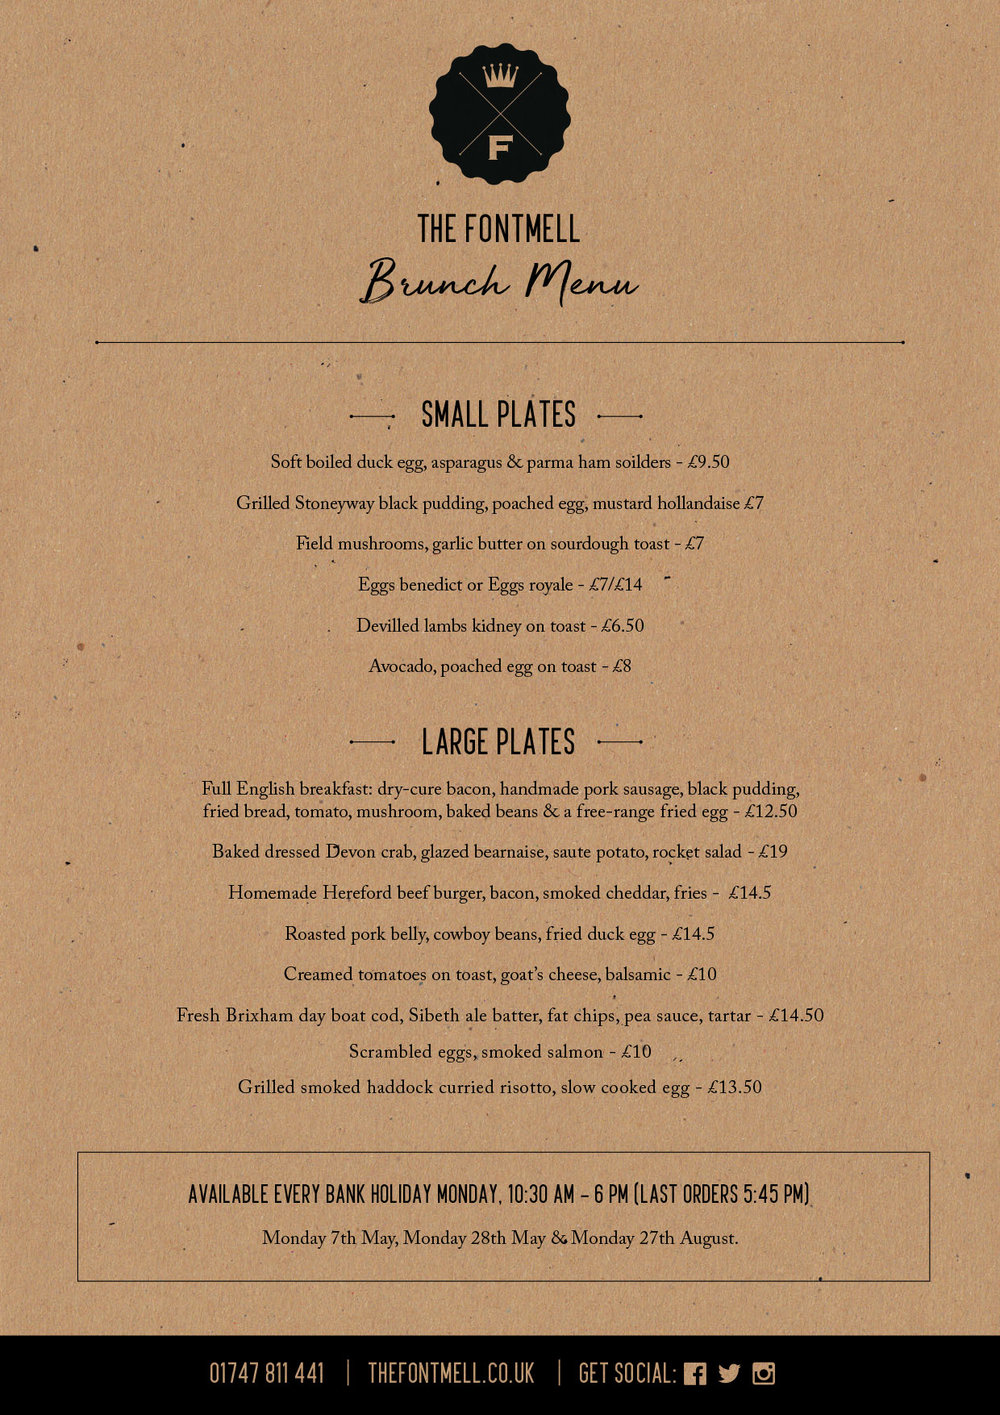 Fontmell_Brunch Menu_A4.jpg